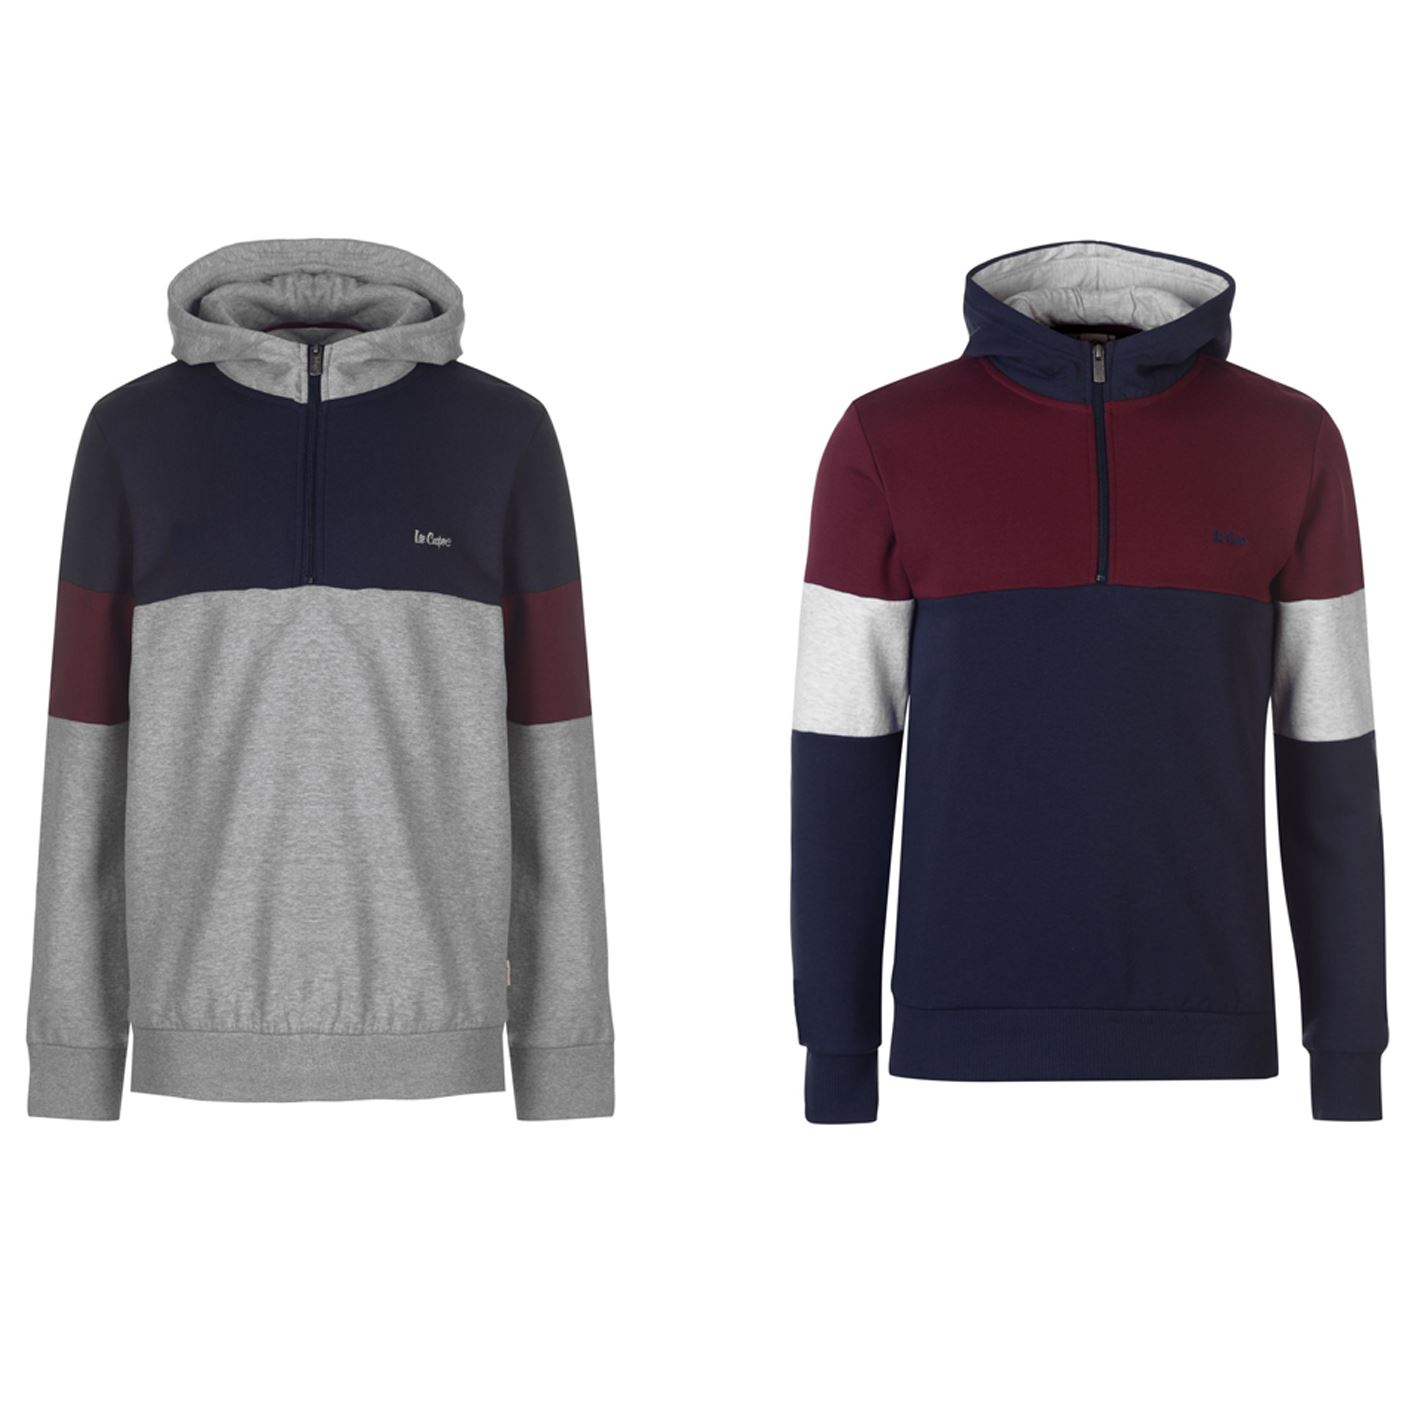 Details about Lee Cooper Cut and Sew Quarter Zip Hoody Mens Hooded Top Sweater Outerwear